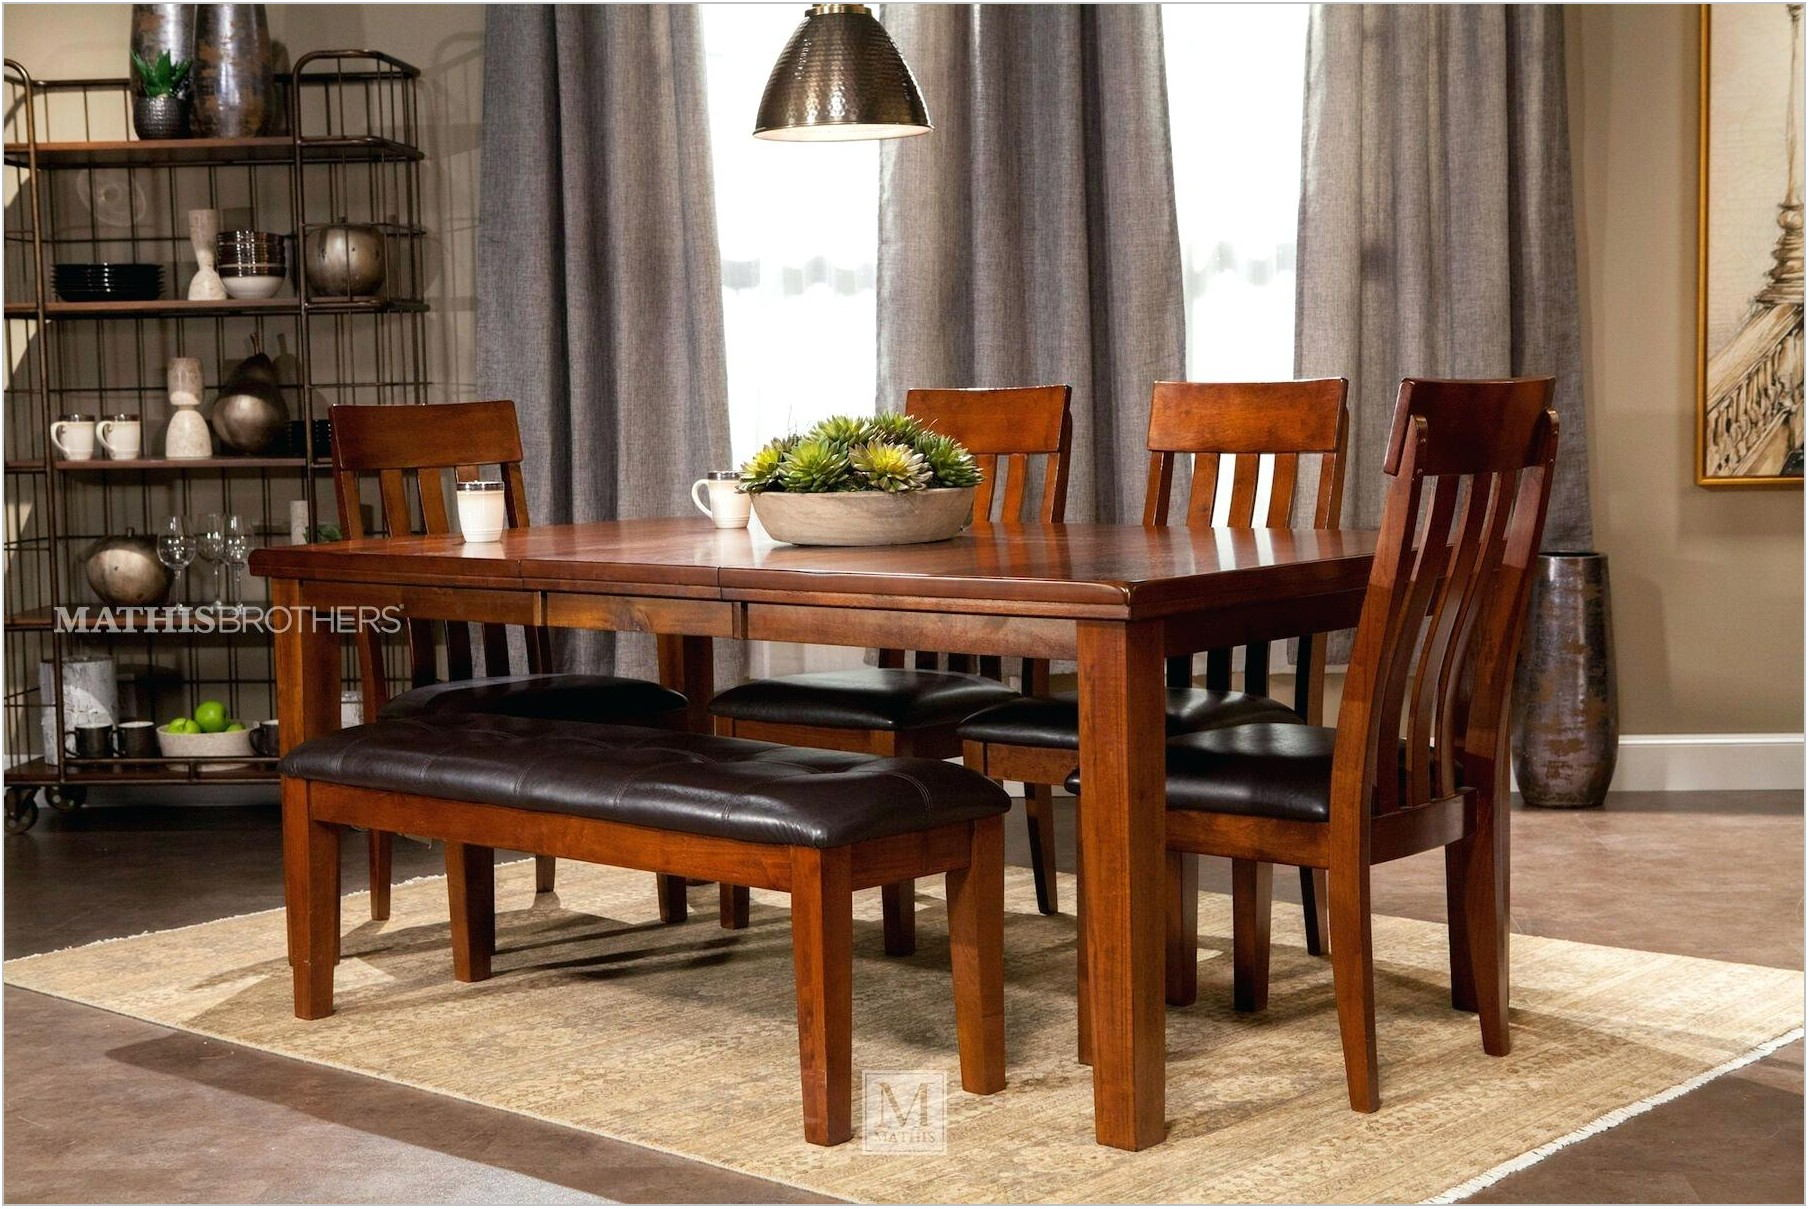 Mathis Brothers Dining Room Furniture